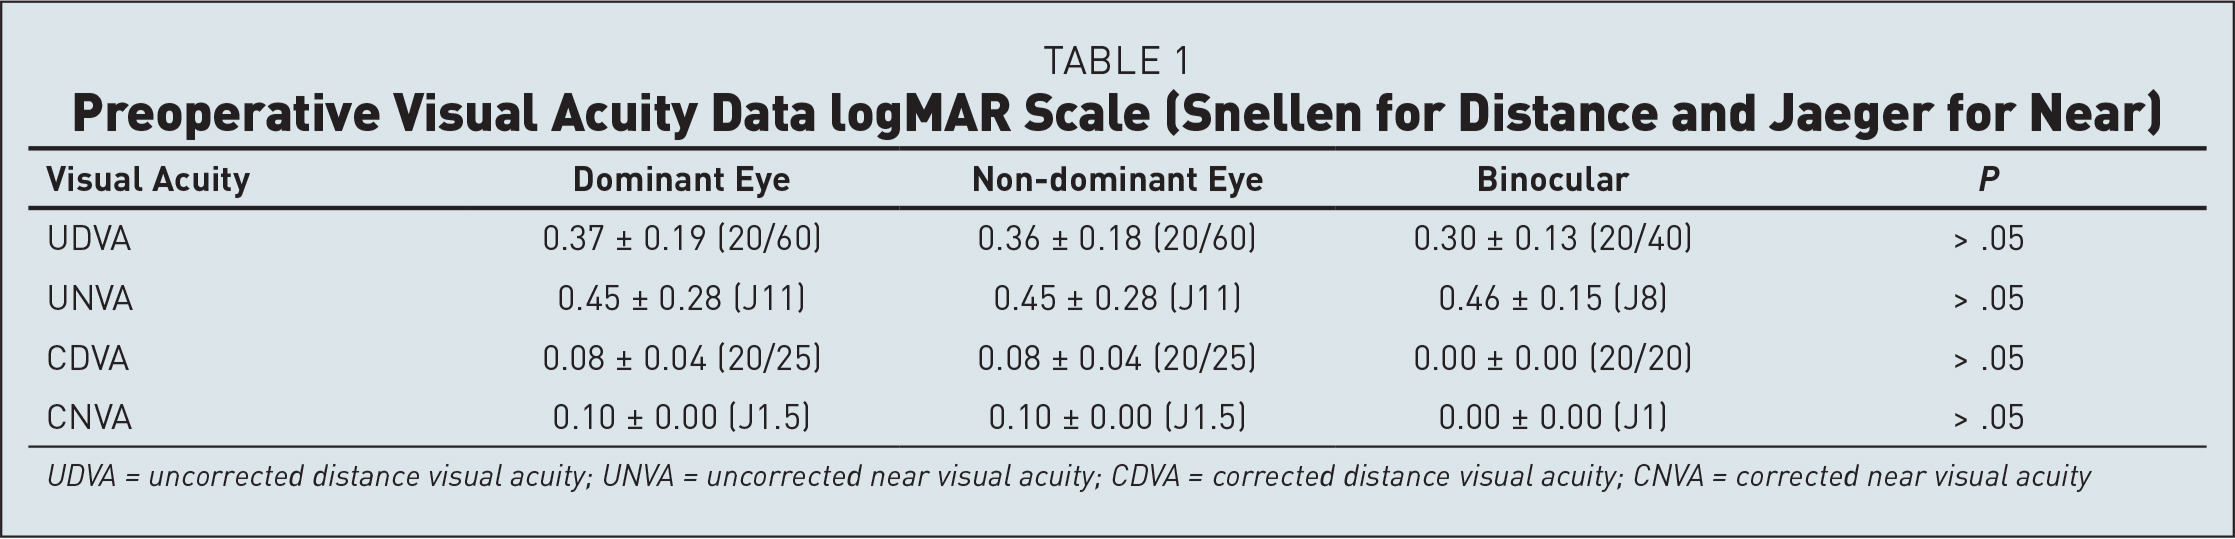 Preoperative Visual Acuity Data logMAR Scale (Snellen for Distance and Jaeger for Near)